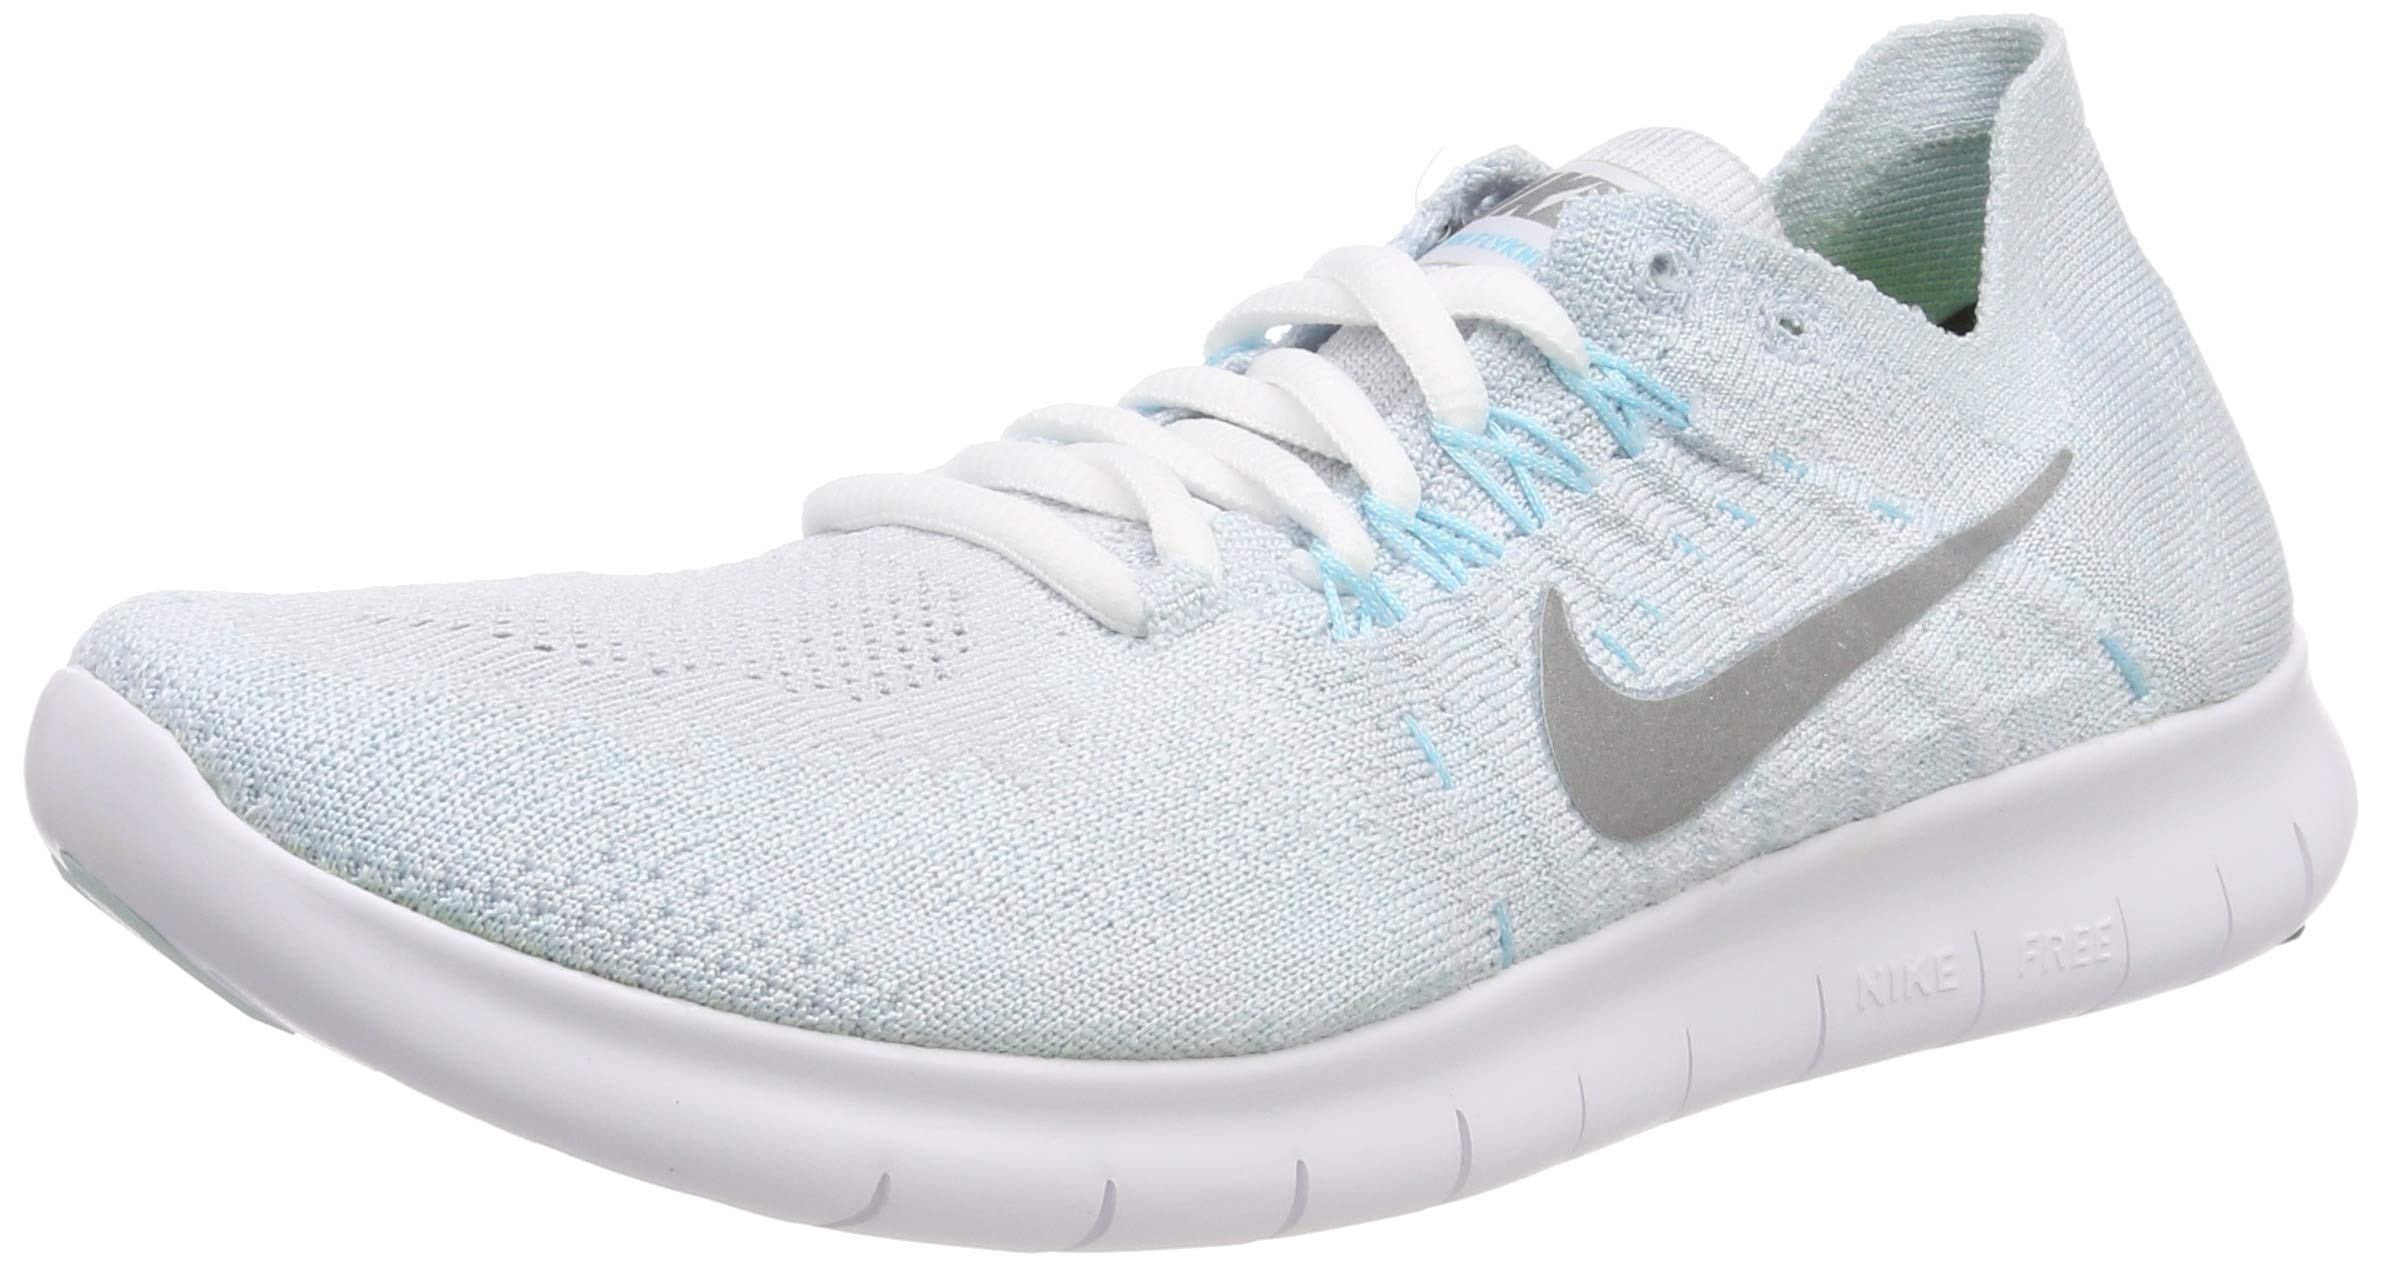 f9a900e9ad161 Galleon - Nike Womens Free Rn Flyknit 2017 Fabric Low Top Lace Up ...